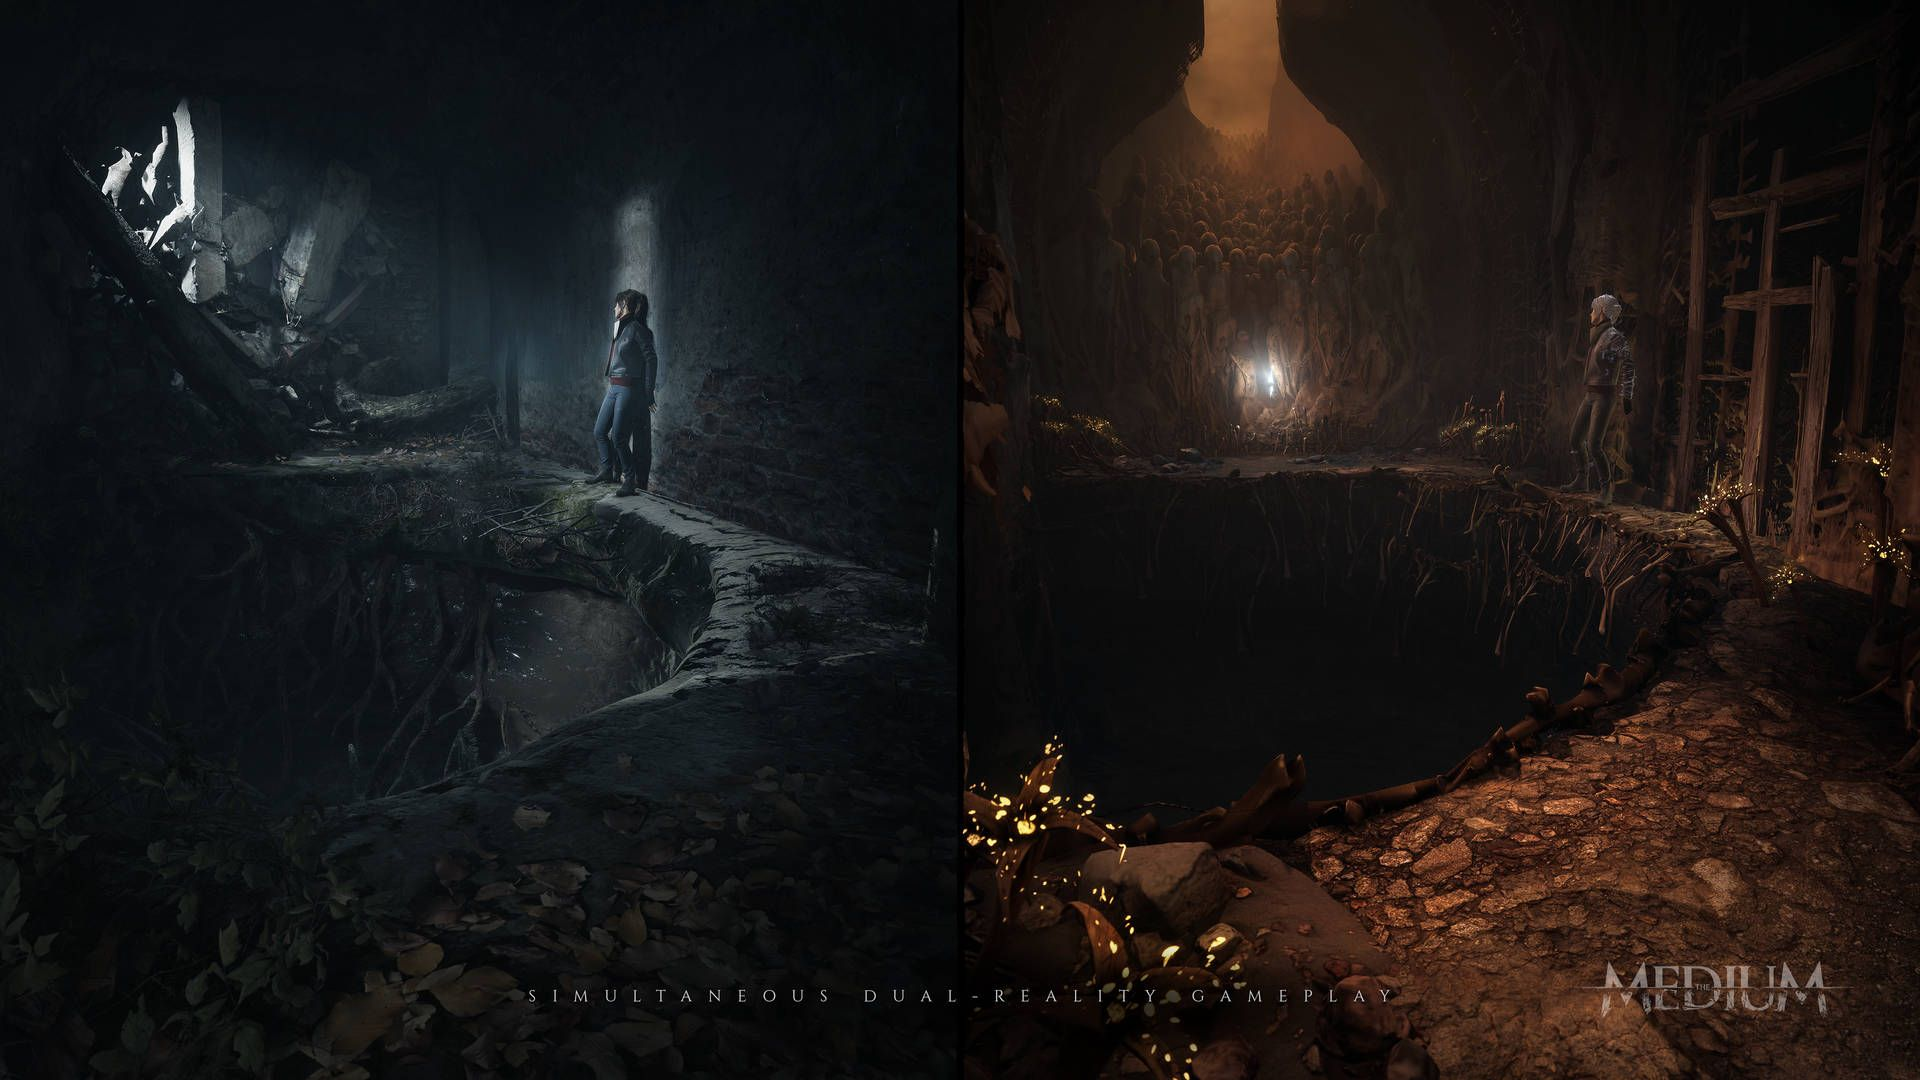 A split screen image from the game The Medium showing the main charater in both the in-game world and the spirt world